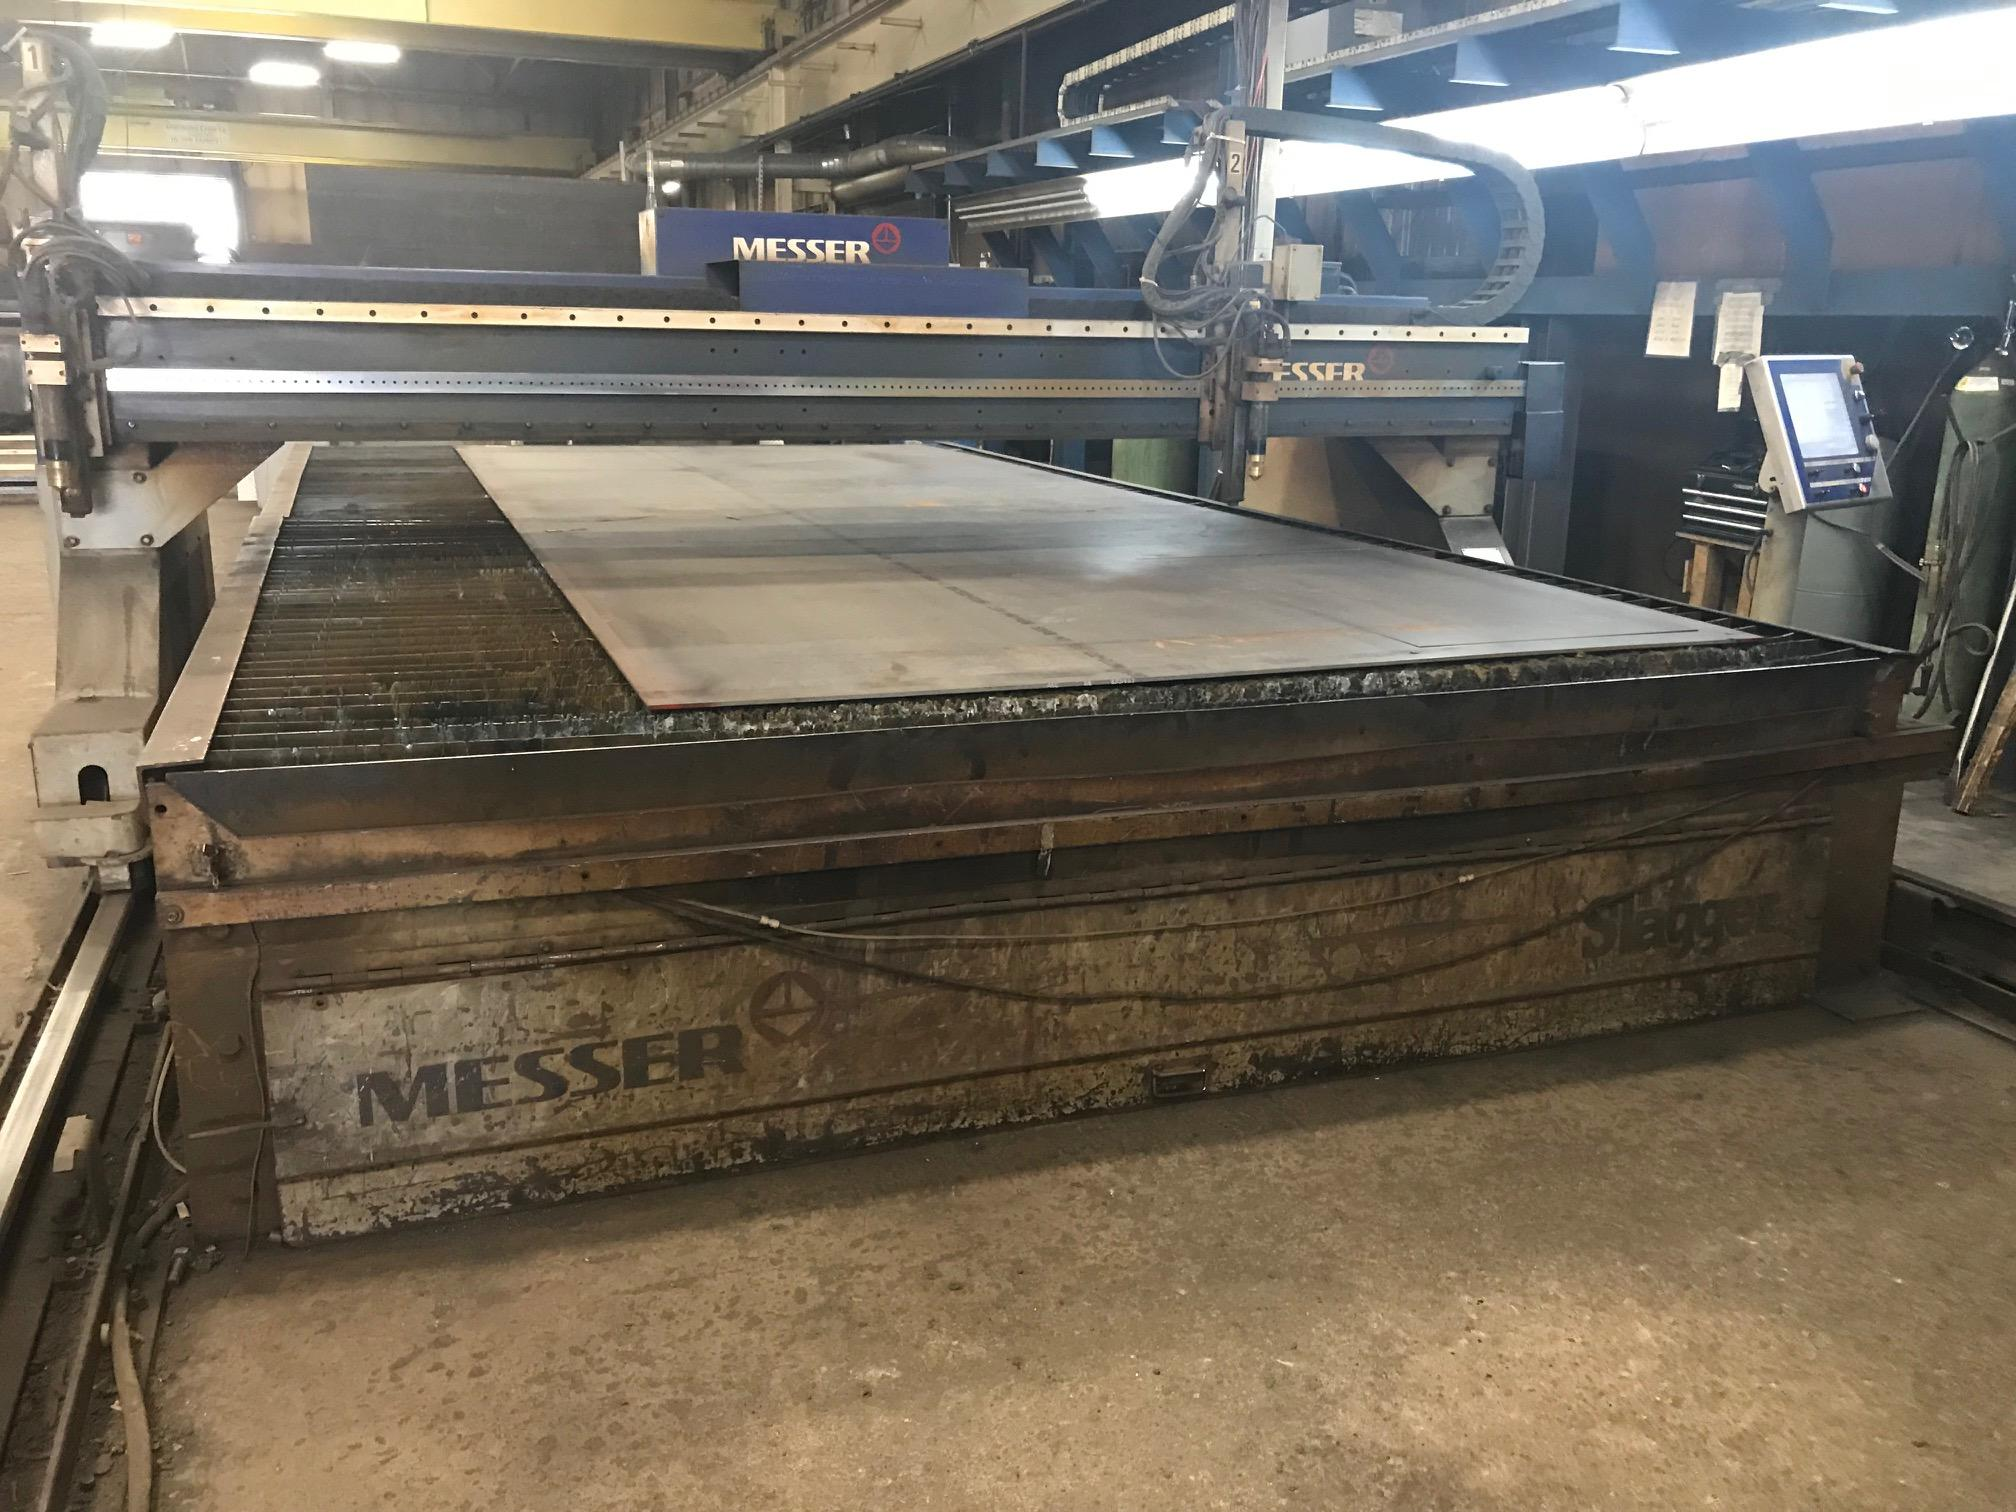 USED MESSER DUAL 200 AMP FINELINE CNC PLASMA CUTTING SYSTEM MODEL 10/4P, 2004, Stock no. 10591